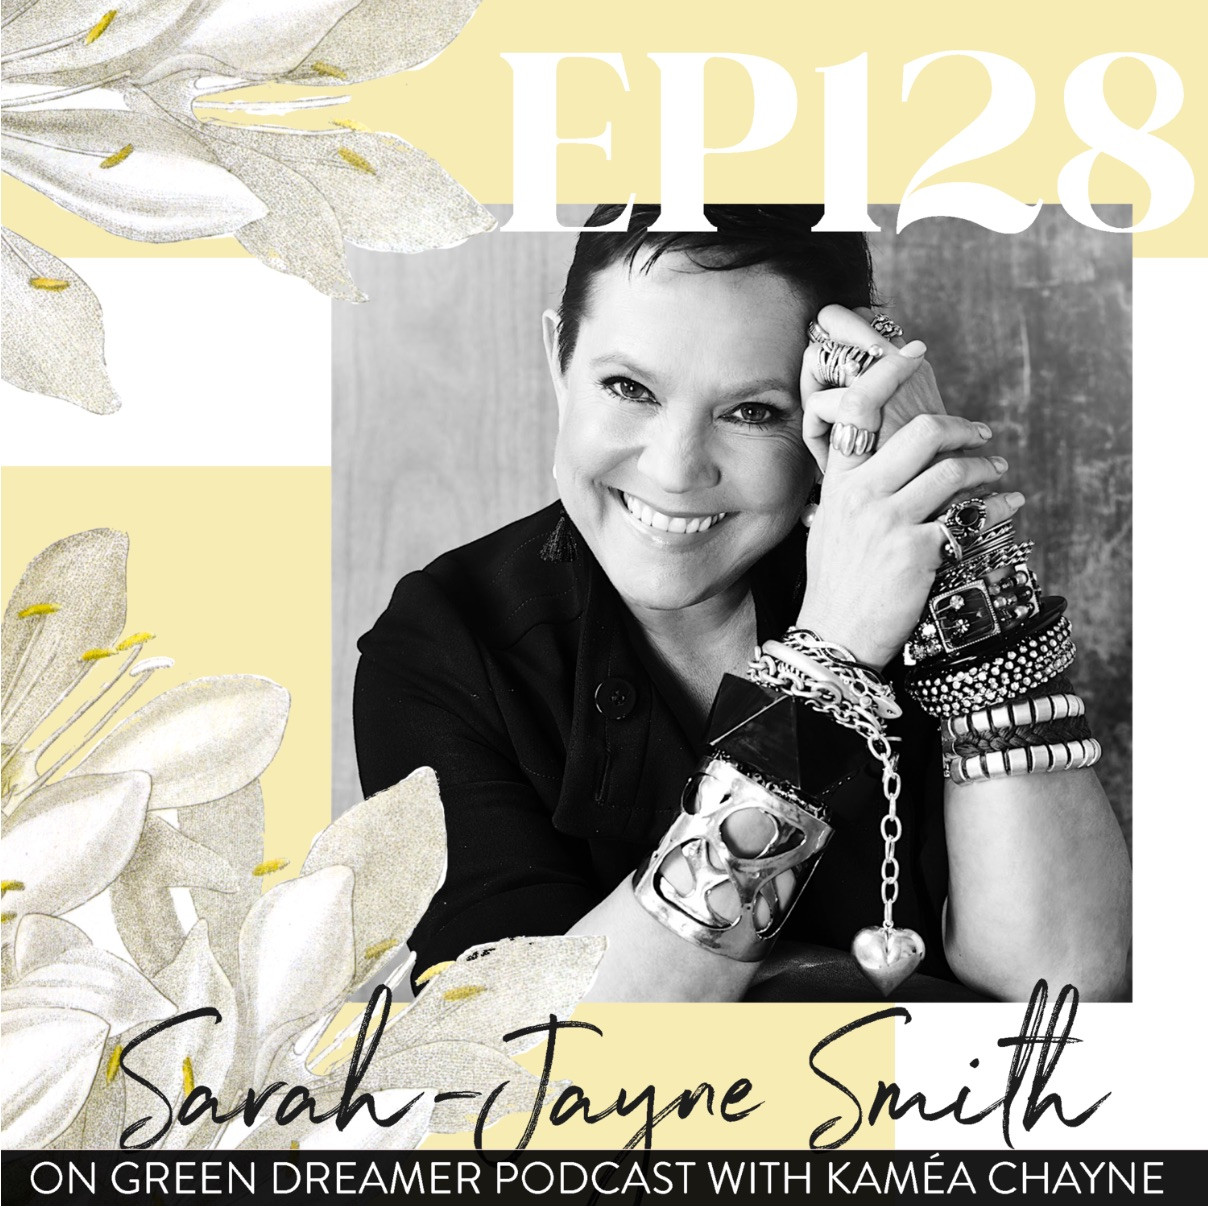 Green Dreamer Podcast featuring M&Ps founder Sarah-Jayne Smith